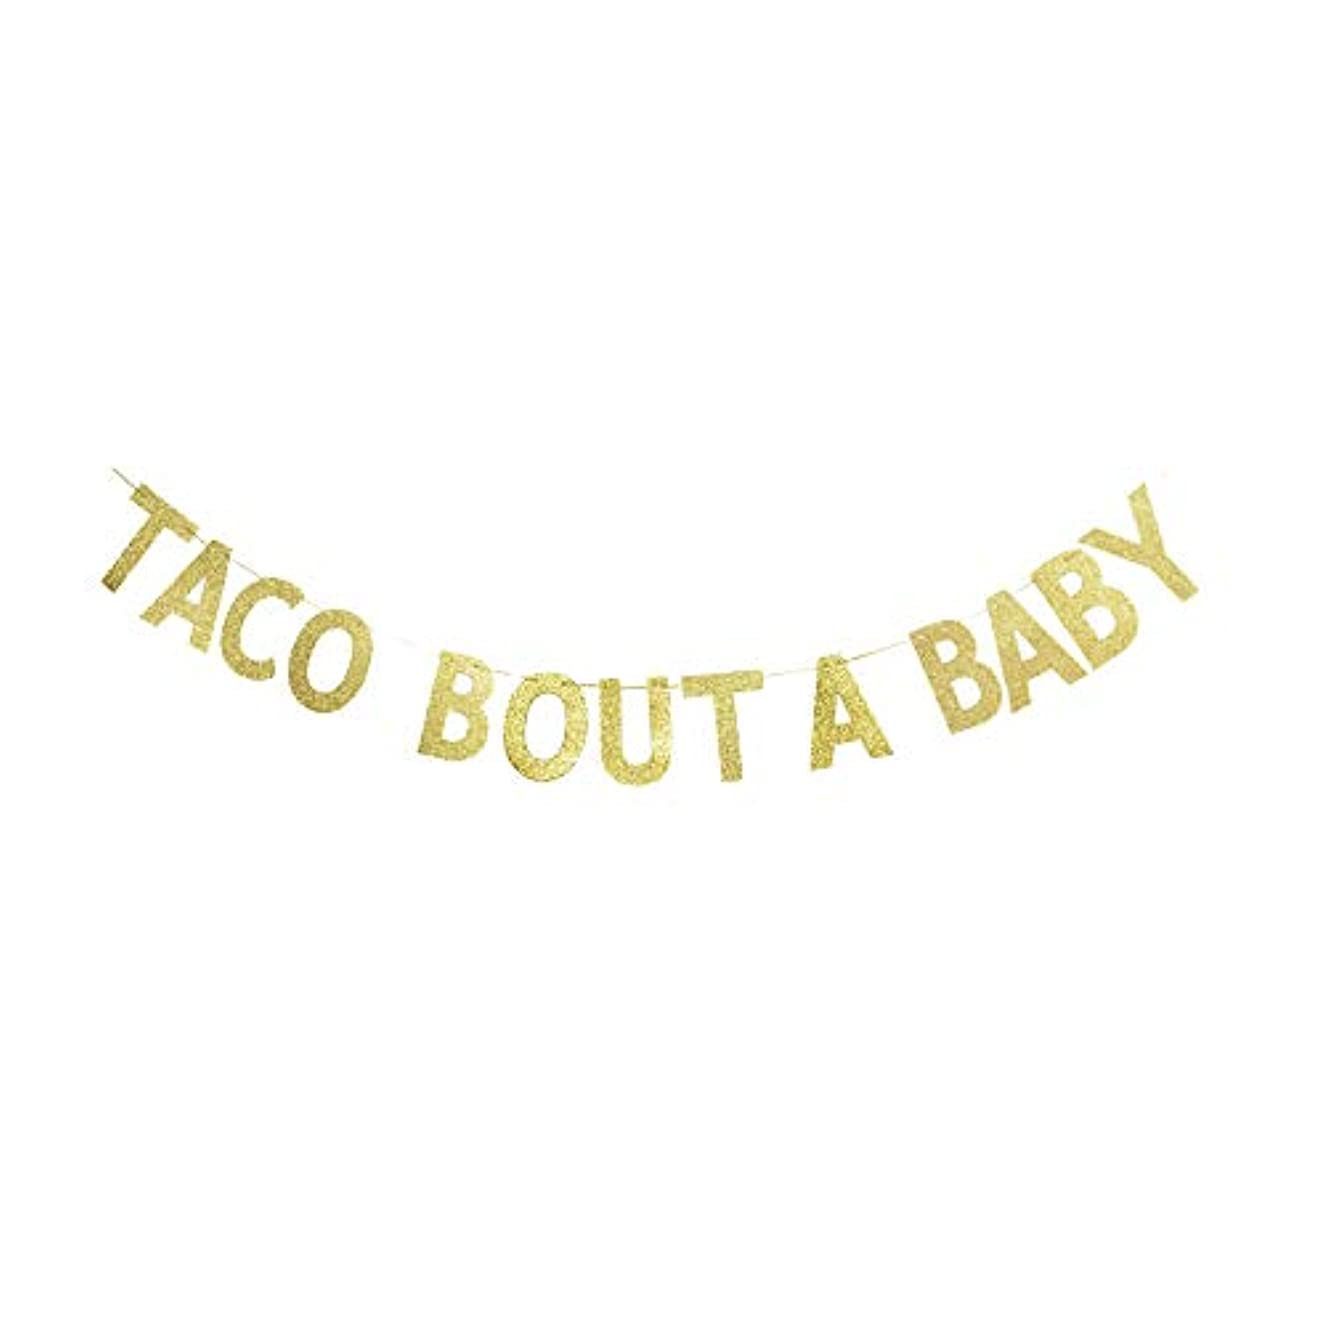 Taco Bout A Baby Banner, Mexican Theme Fiesta Party Baby Shower/Announcement Gold Gliter Paper Sign